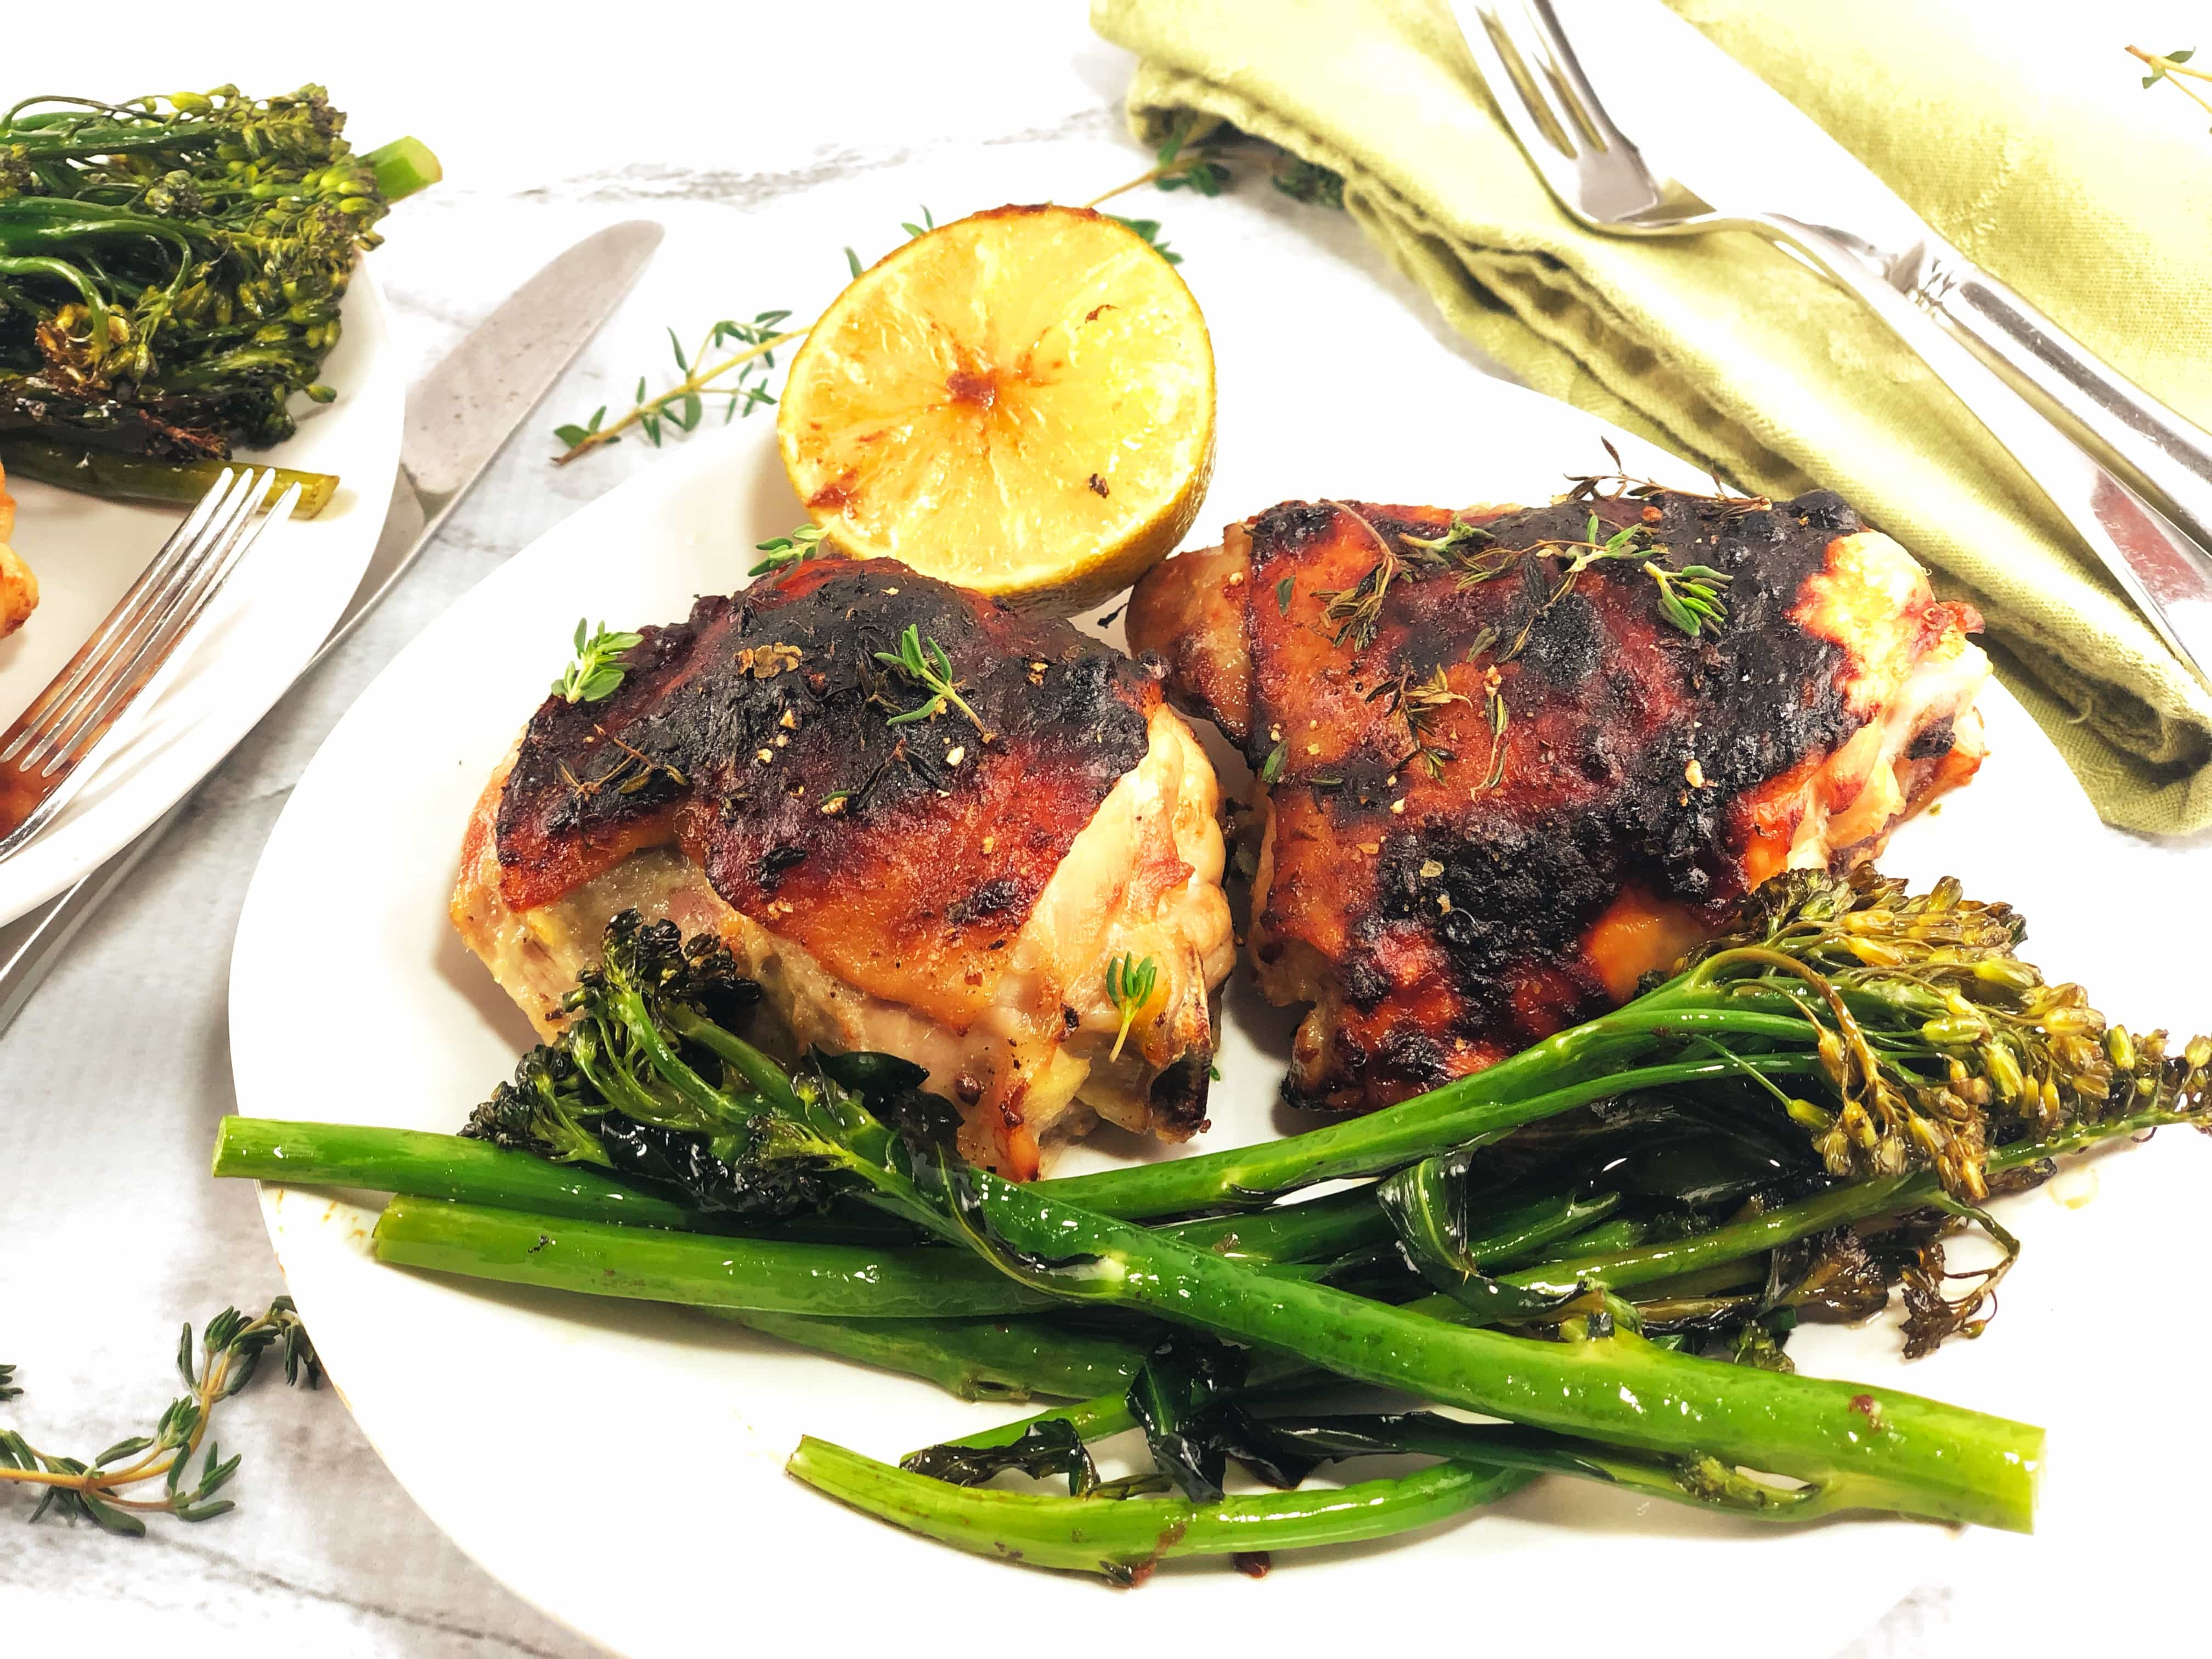 Sheet Pan Rhubarb Chicken with Broccolini